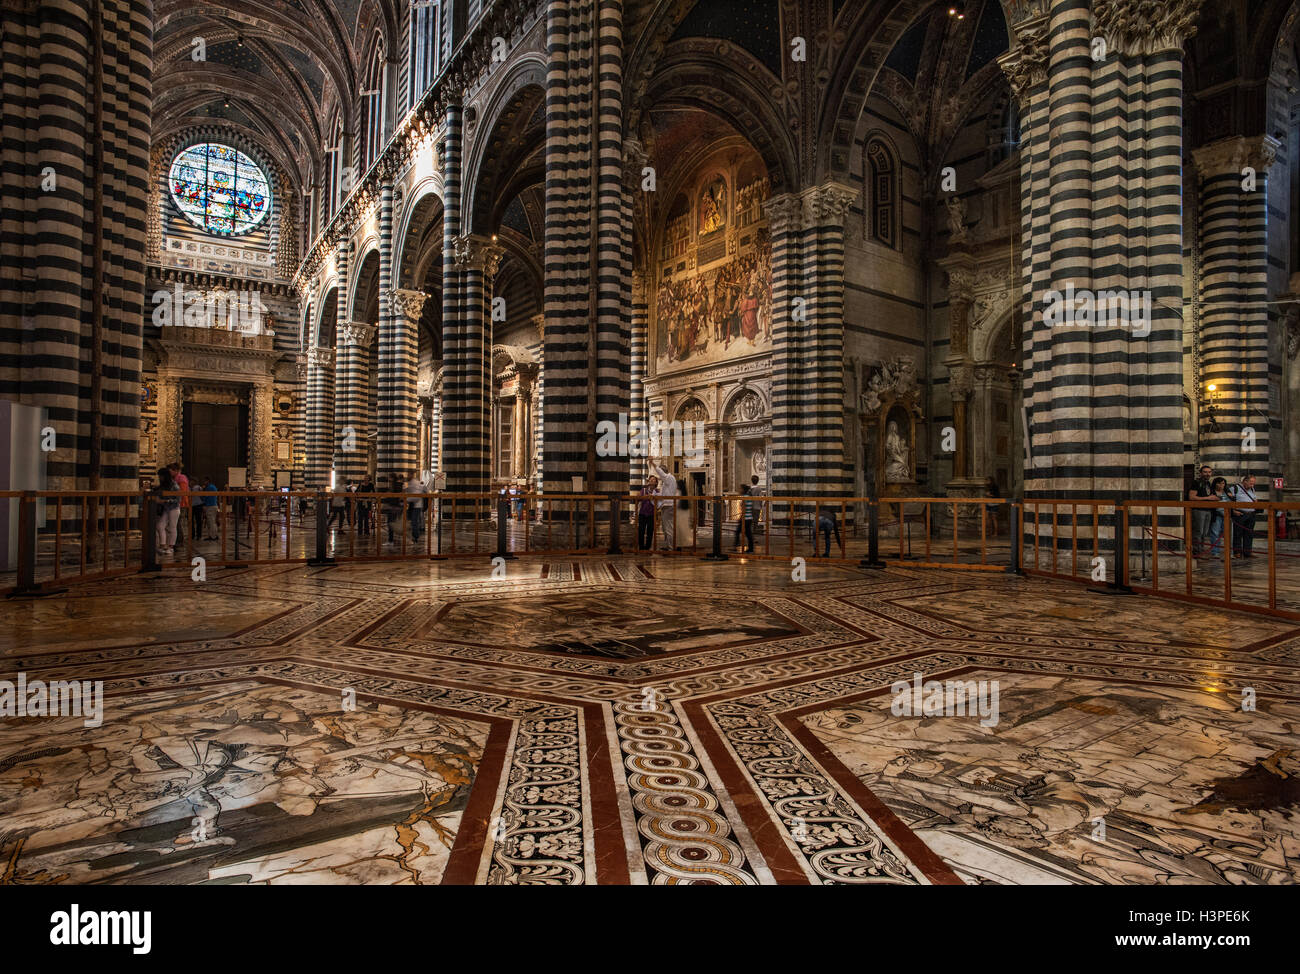 Siena, Tuscany, Italy. September 2016 The Duomo or Cathedral interior view showing the Marble floor with graffito - Stock Image